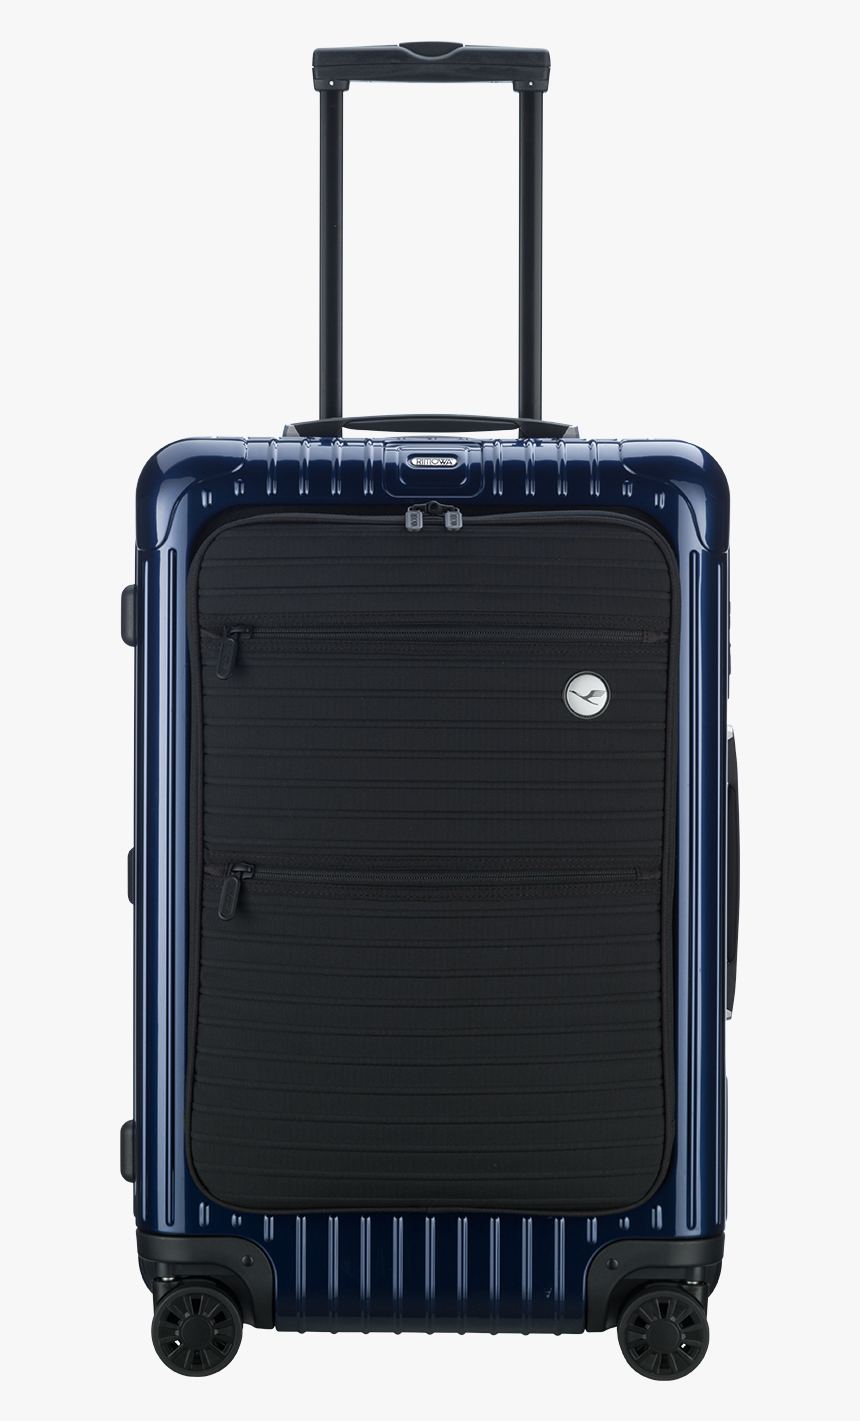 Away Luggage The Bigger Carry On Navy, HD Png Download, Free Download